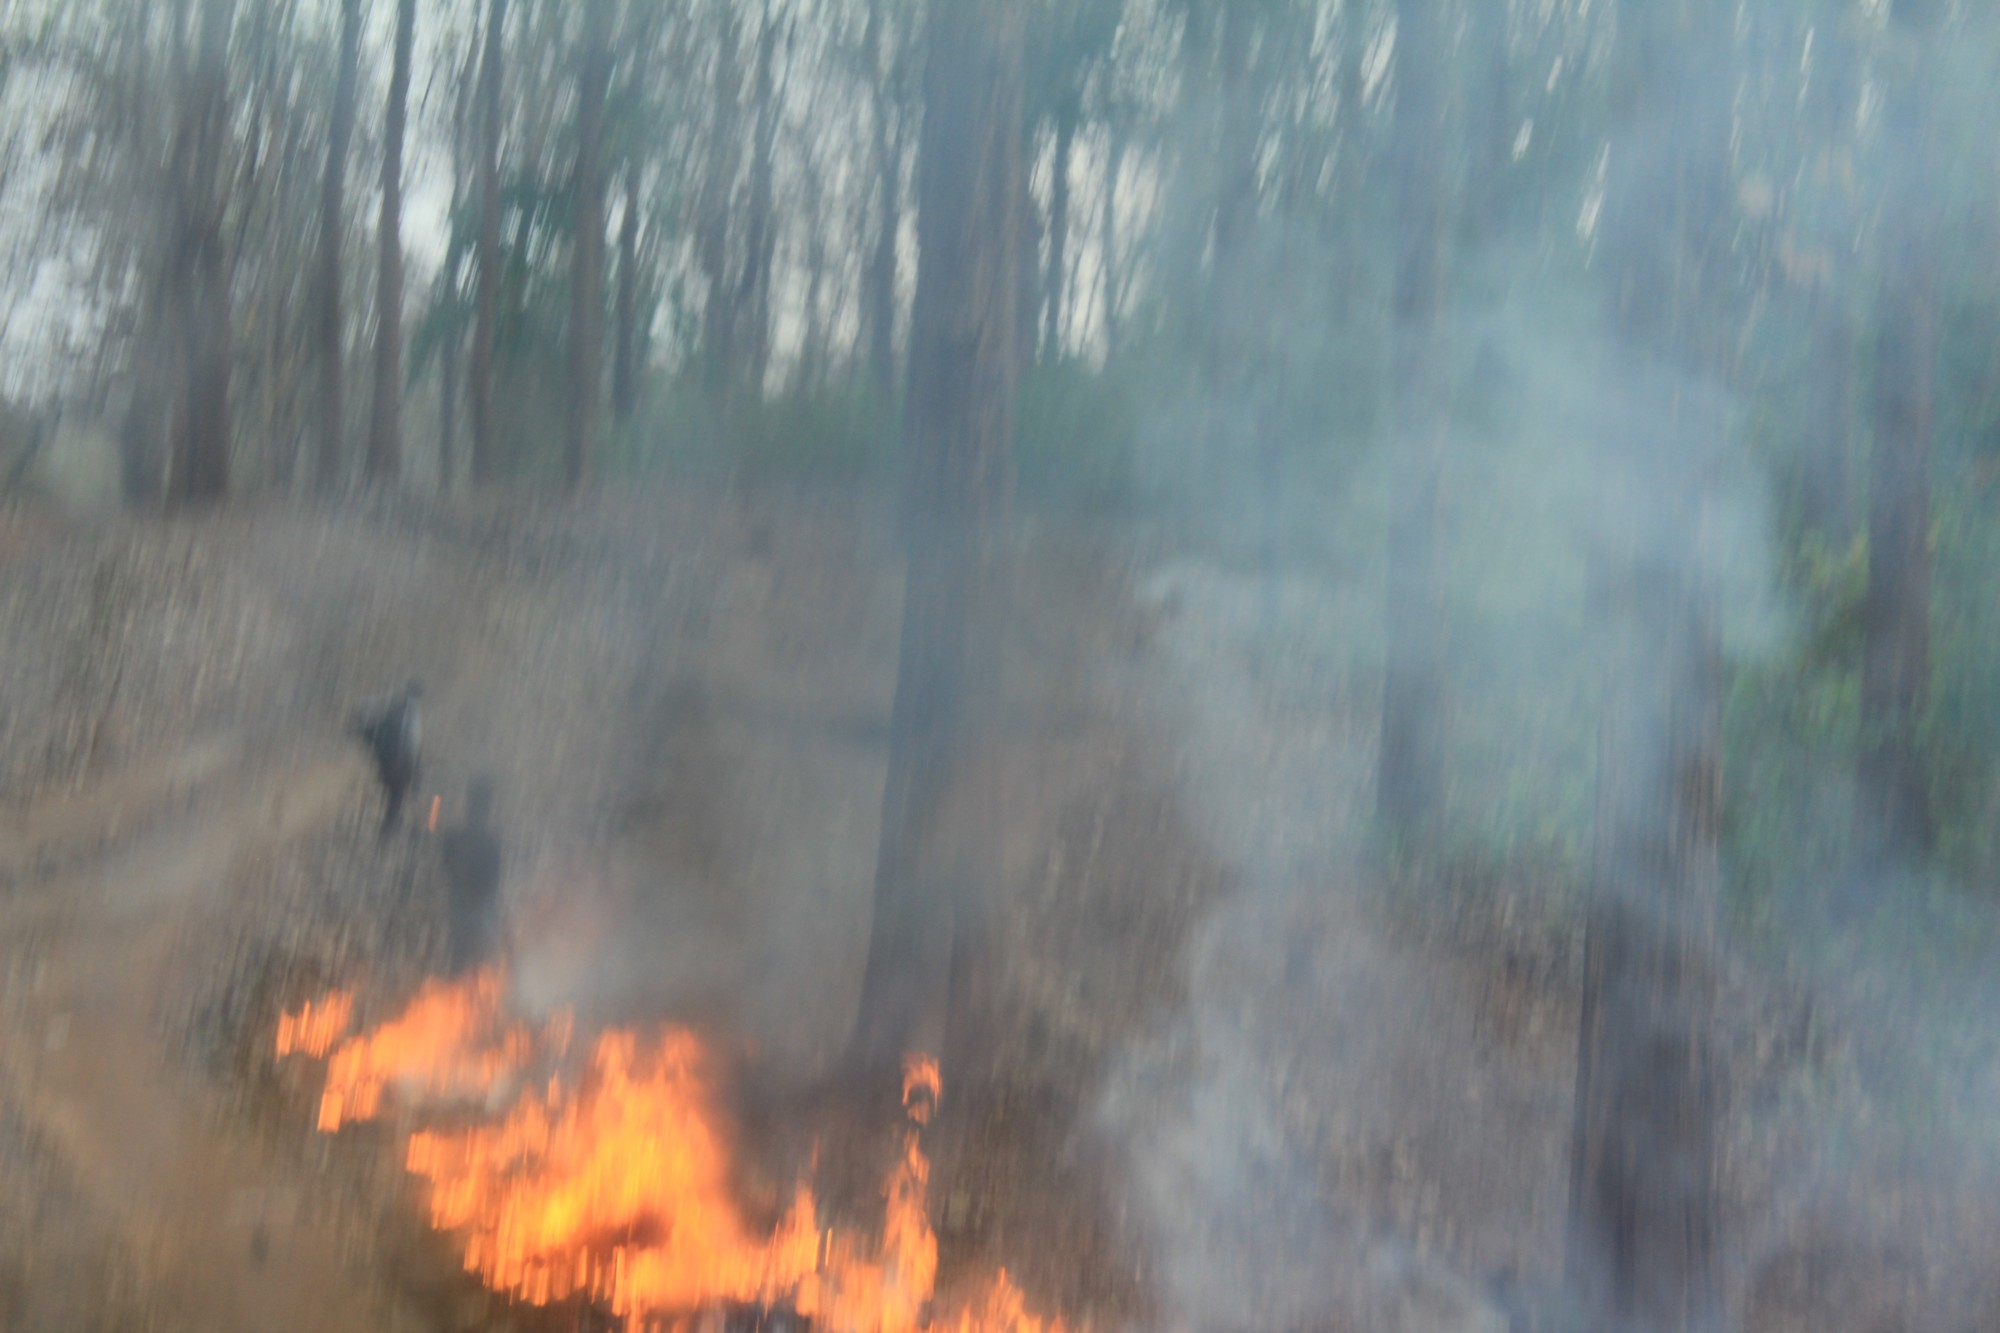 A blurred image of burning pyre and smoke. Some blurred human figures in the background.